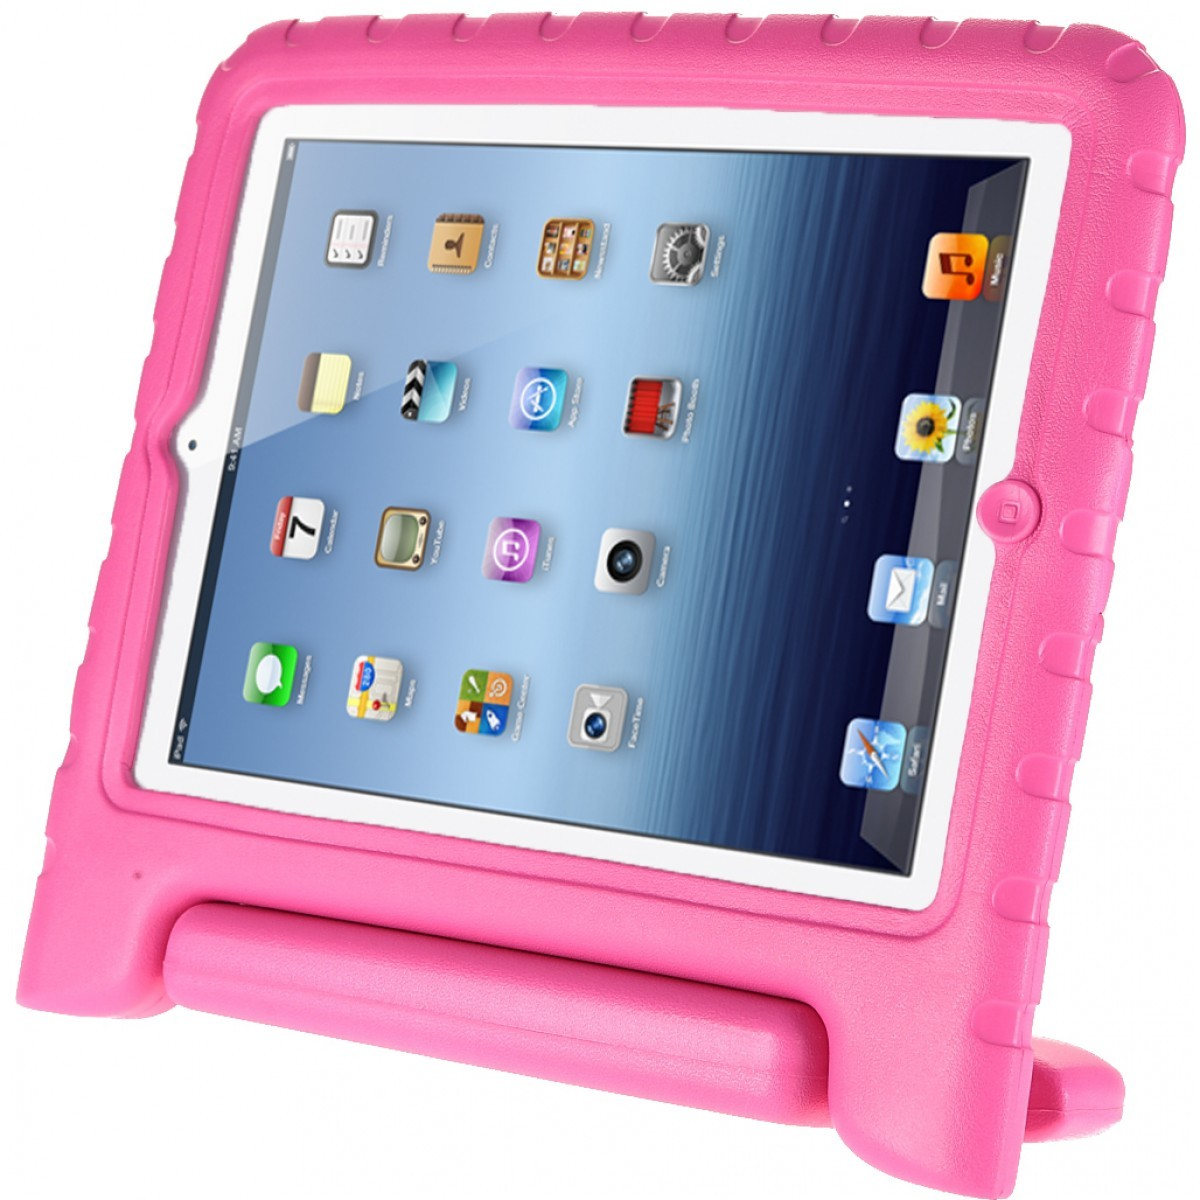 Shockproof Ipad Air Case With Handle In Pink Hardtofind